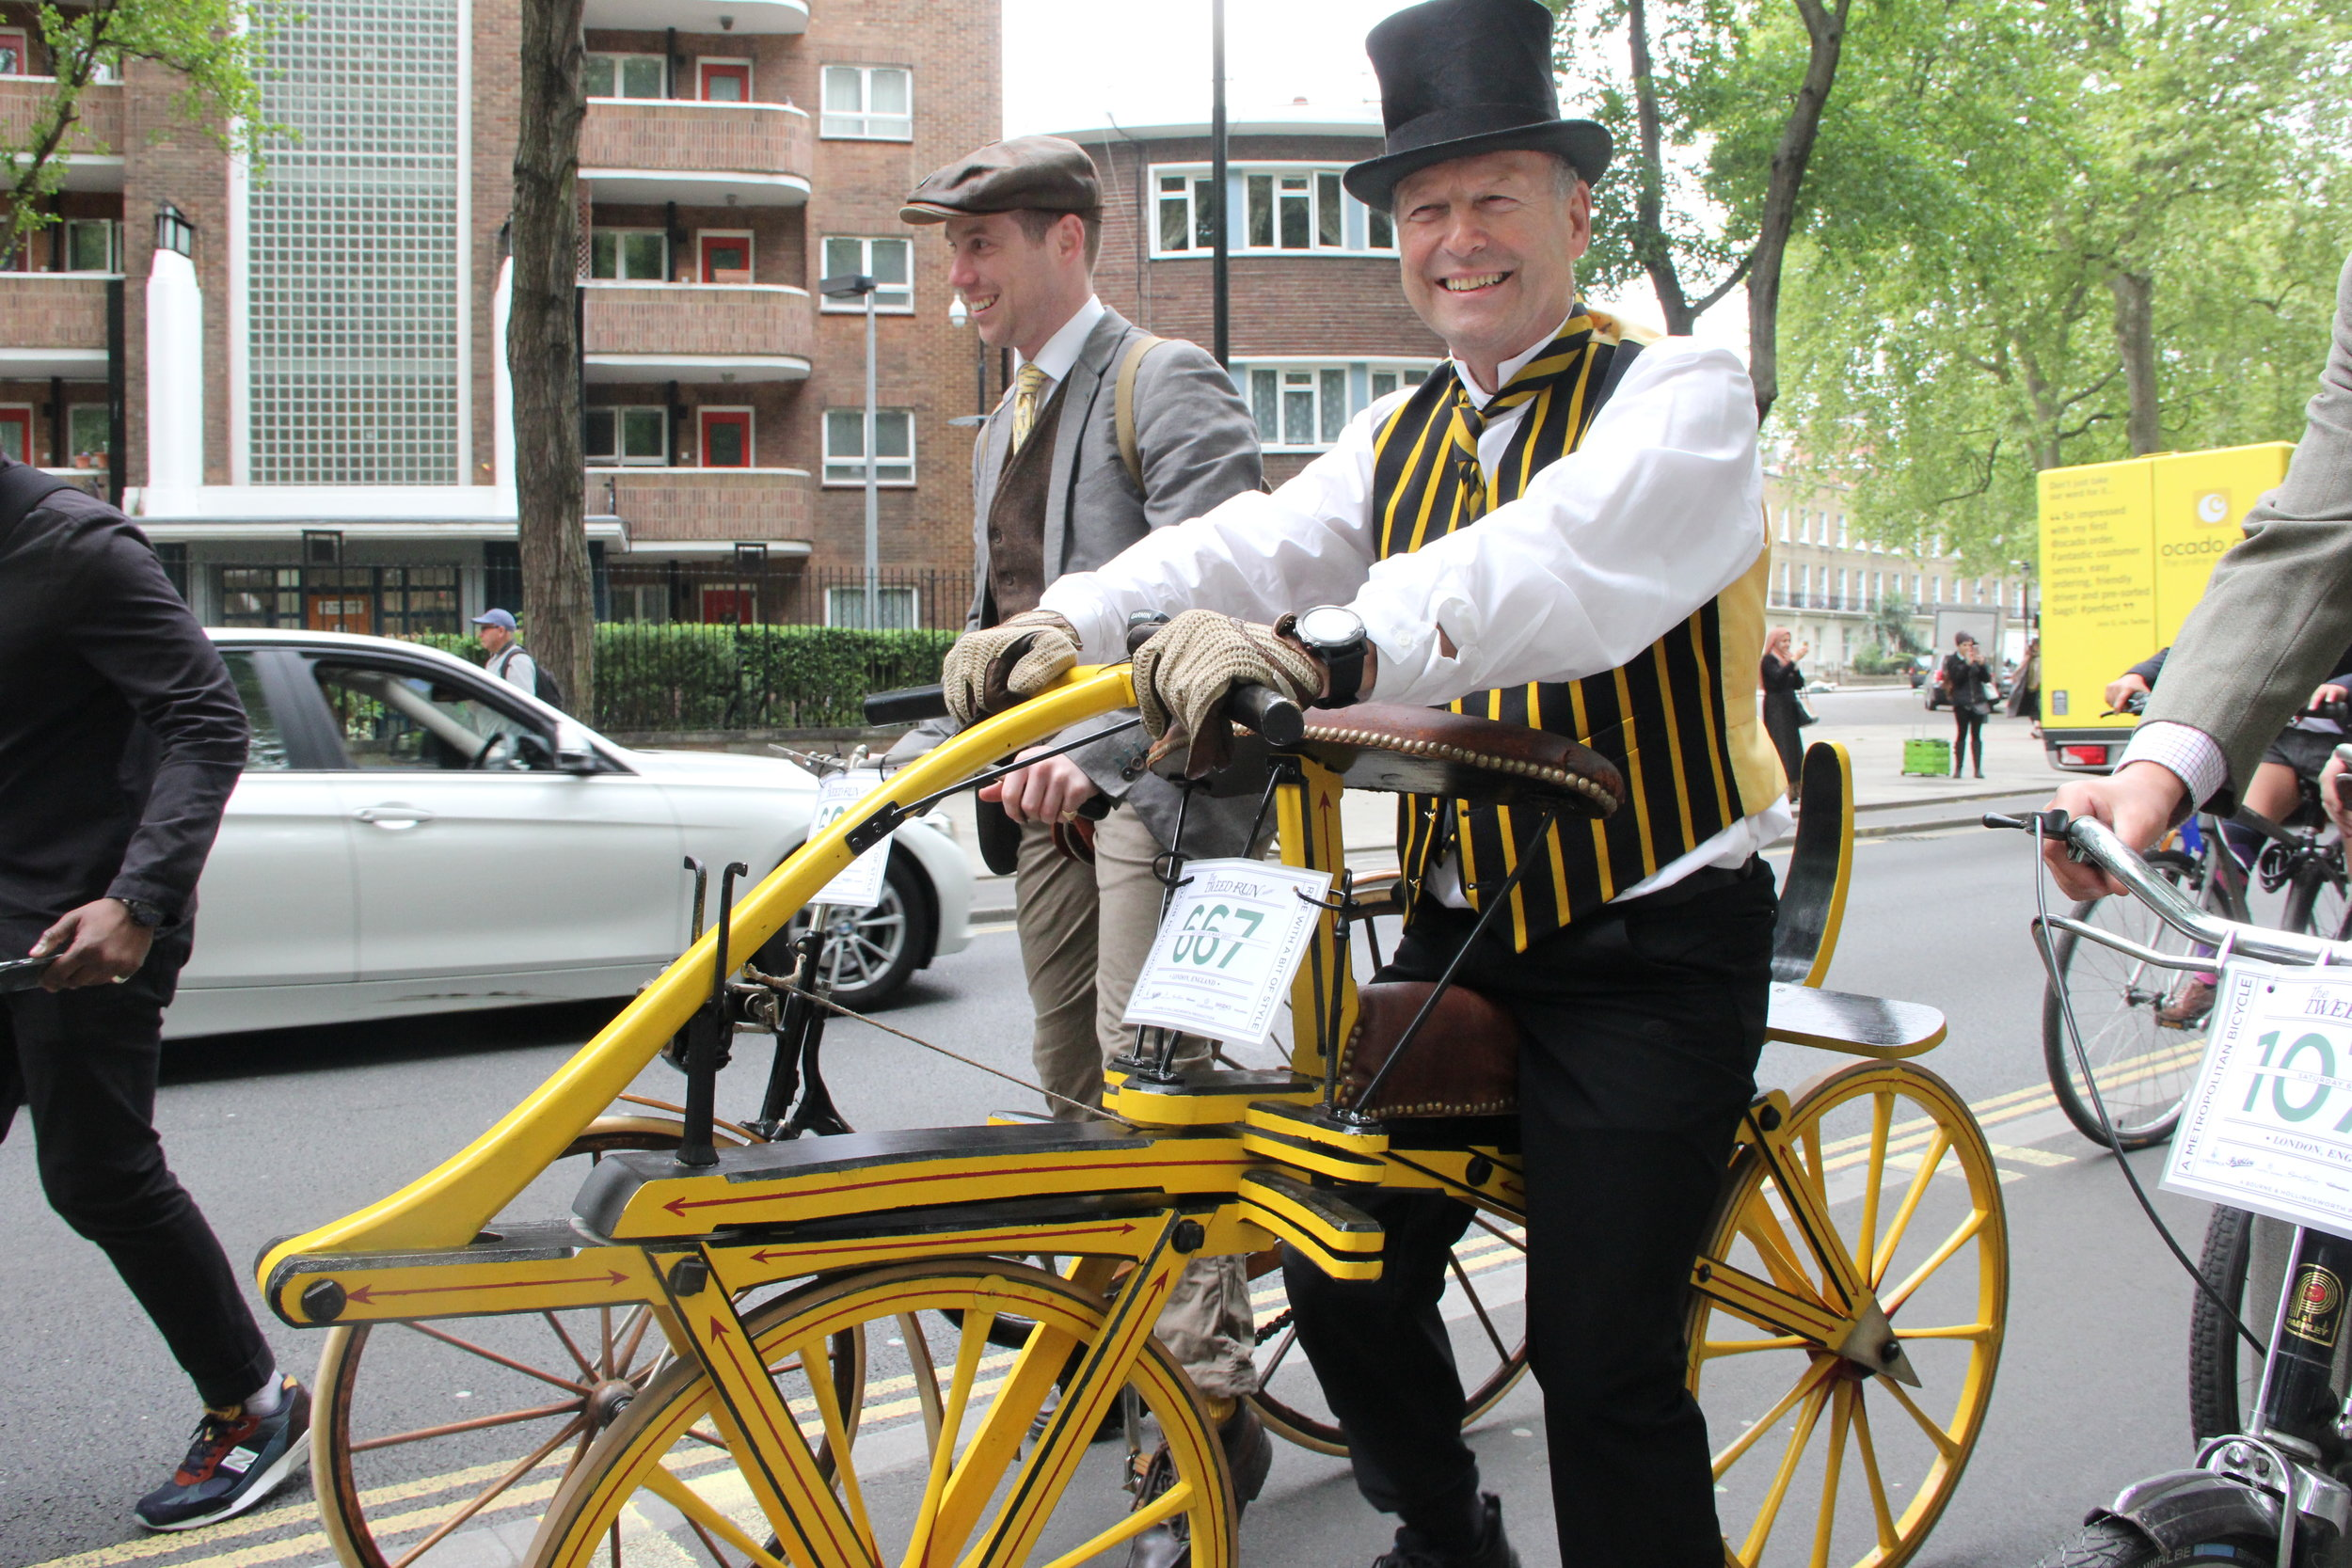 A replica of the 'dandy horse' at this year's Tweed Run